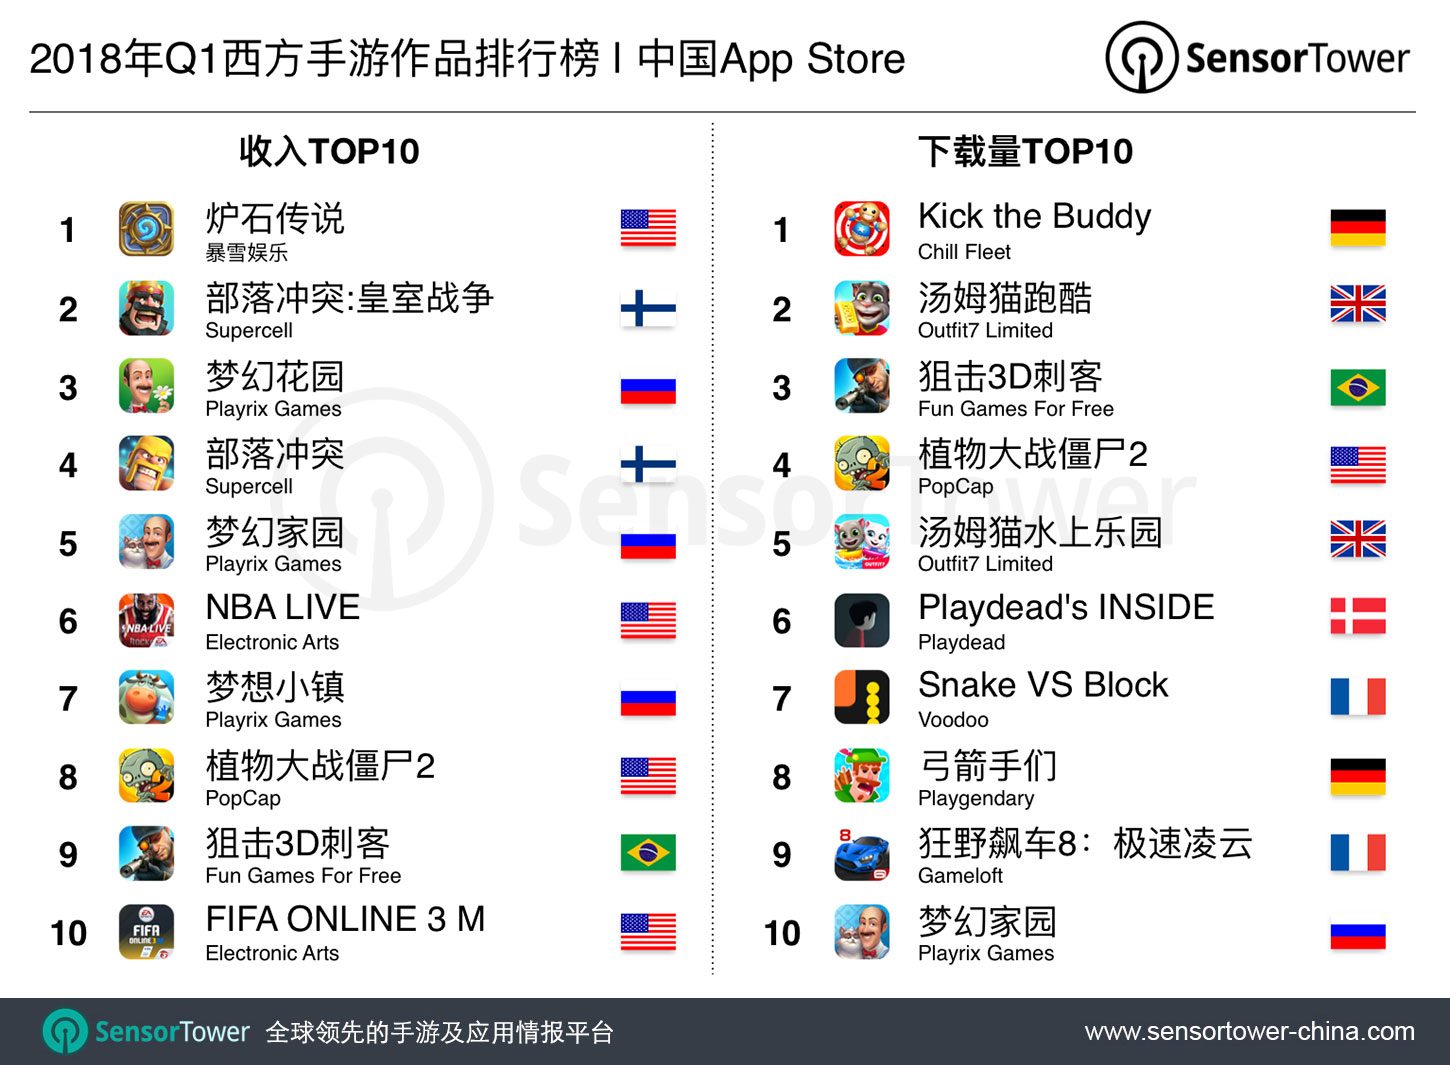 Q1 2018 Top 10 Western Games in China by Revenue and Downloads  - q1 2018 top 10 western games in china by revenue and downloads - 2018年第一季度十大欧美手游在中国:国人氪金《炉石传说》最高,下载《Kick the Buddy》最多